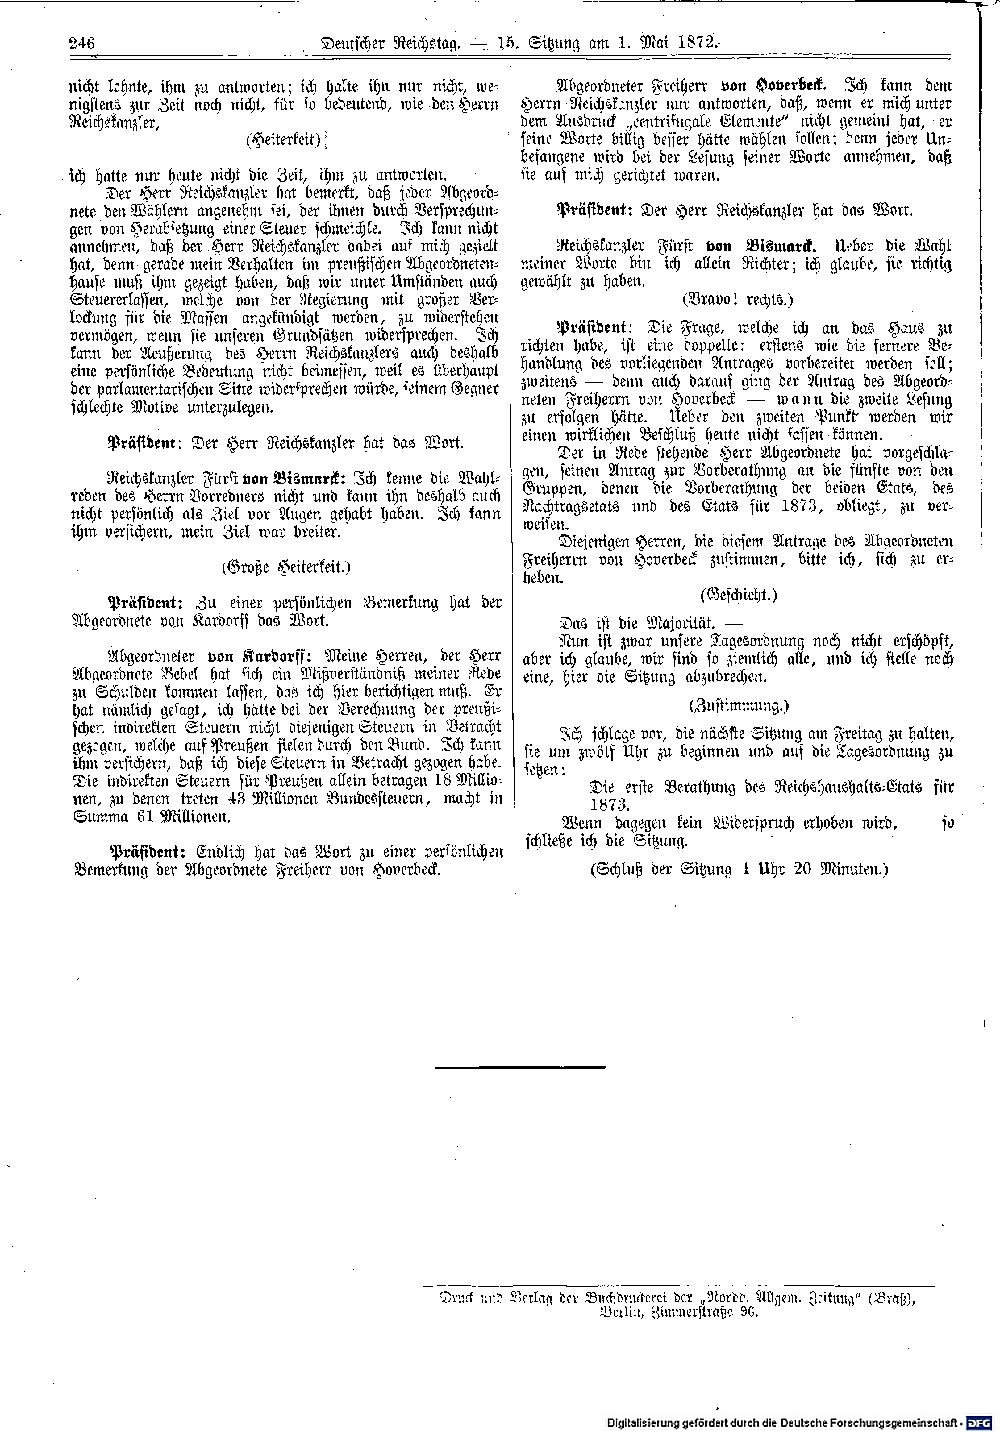 Scan of page 246